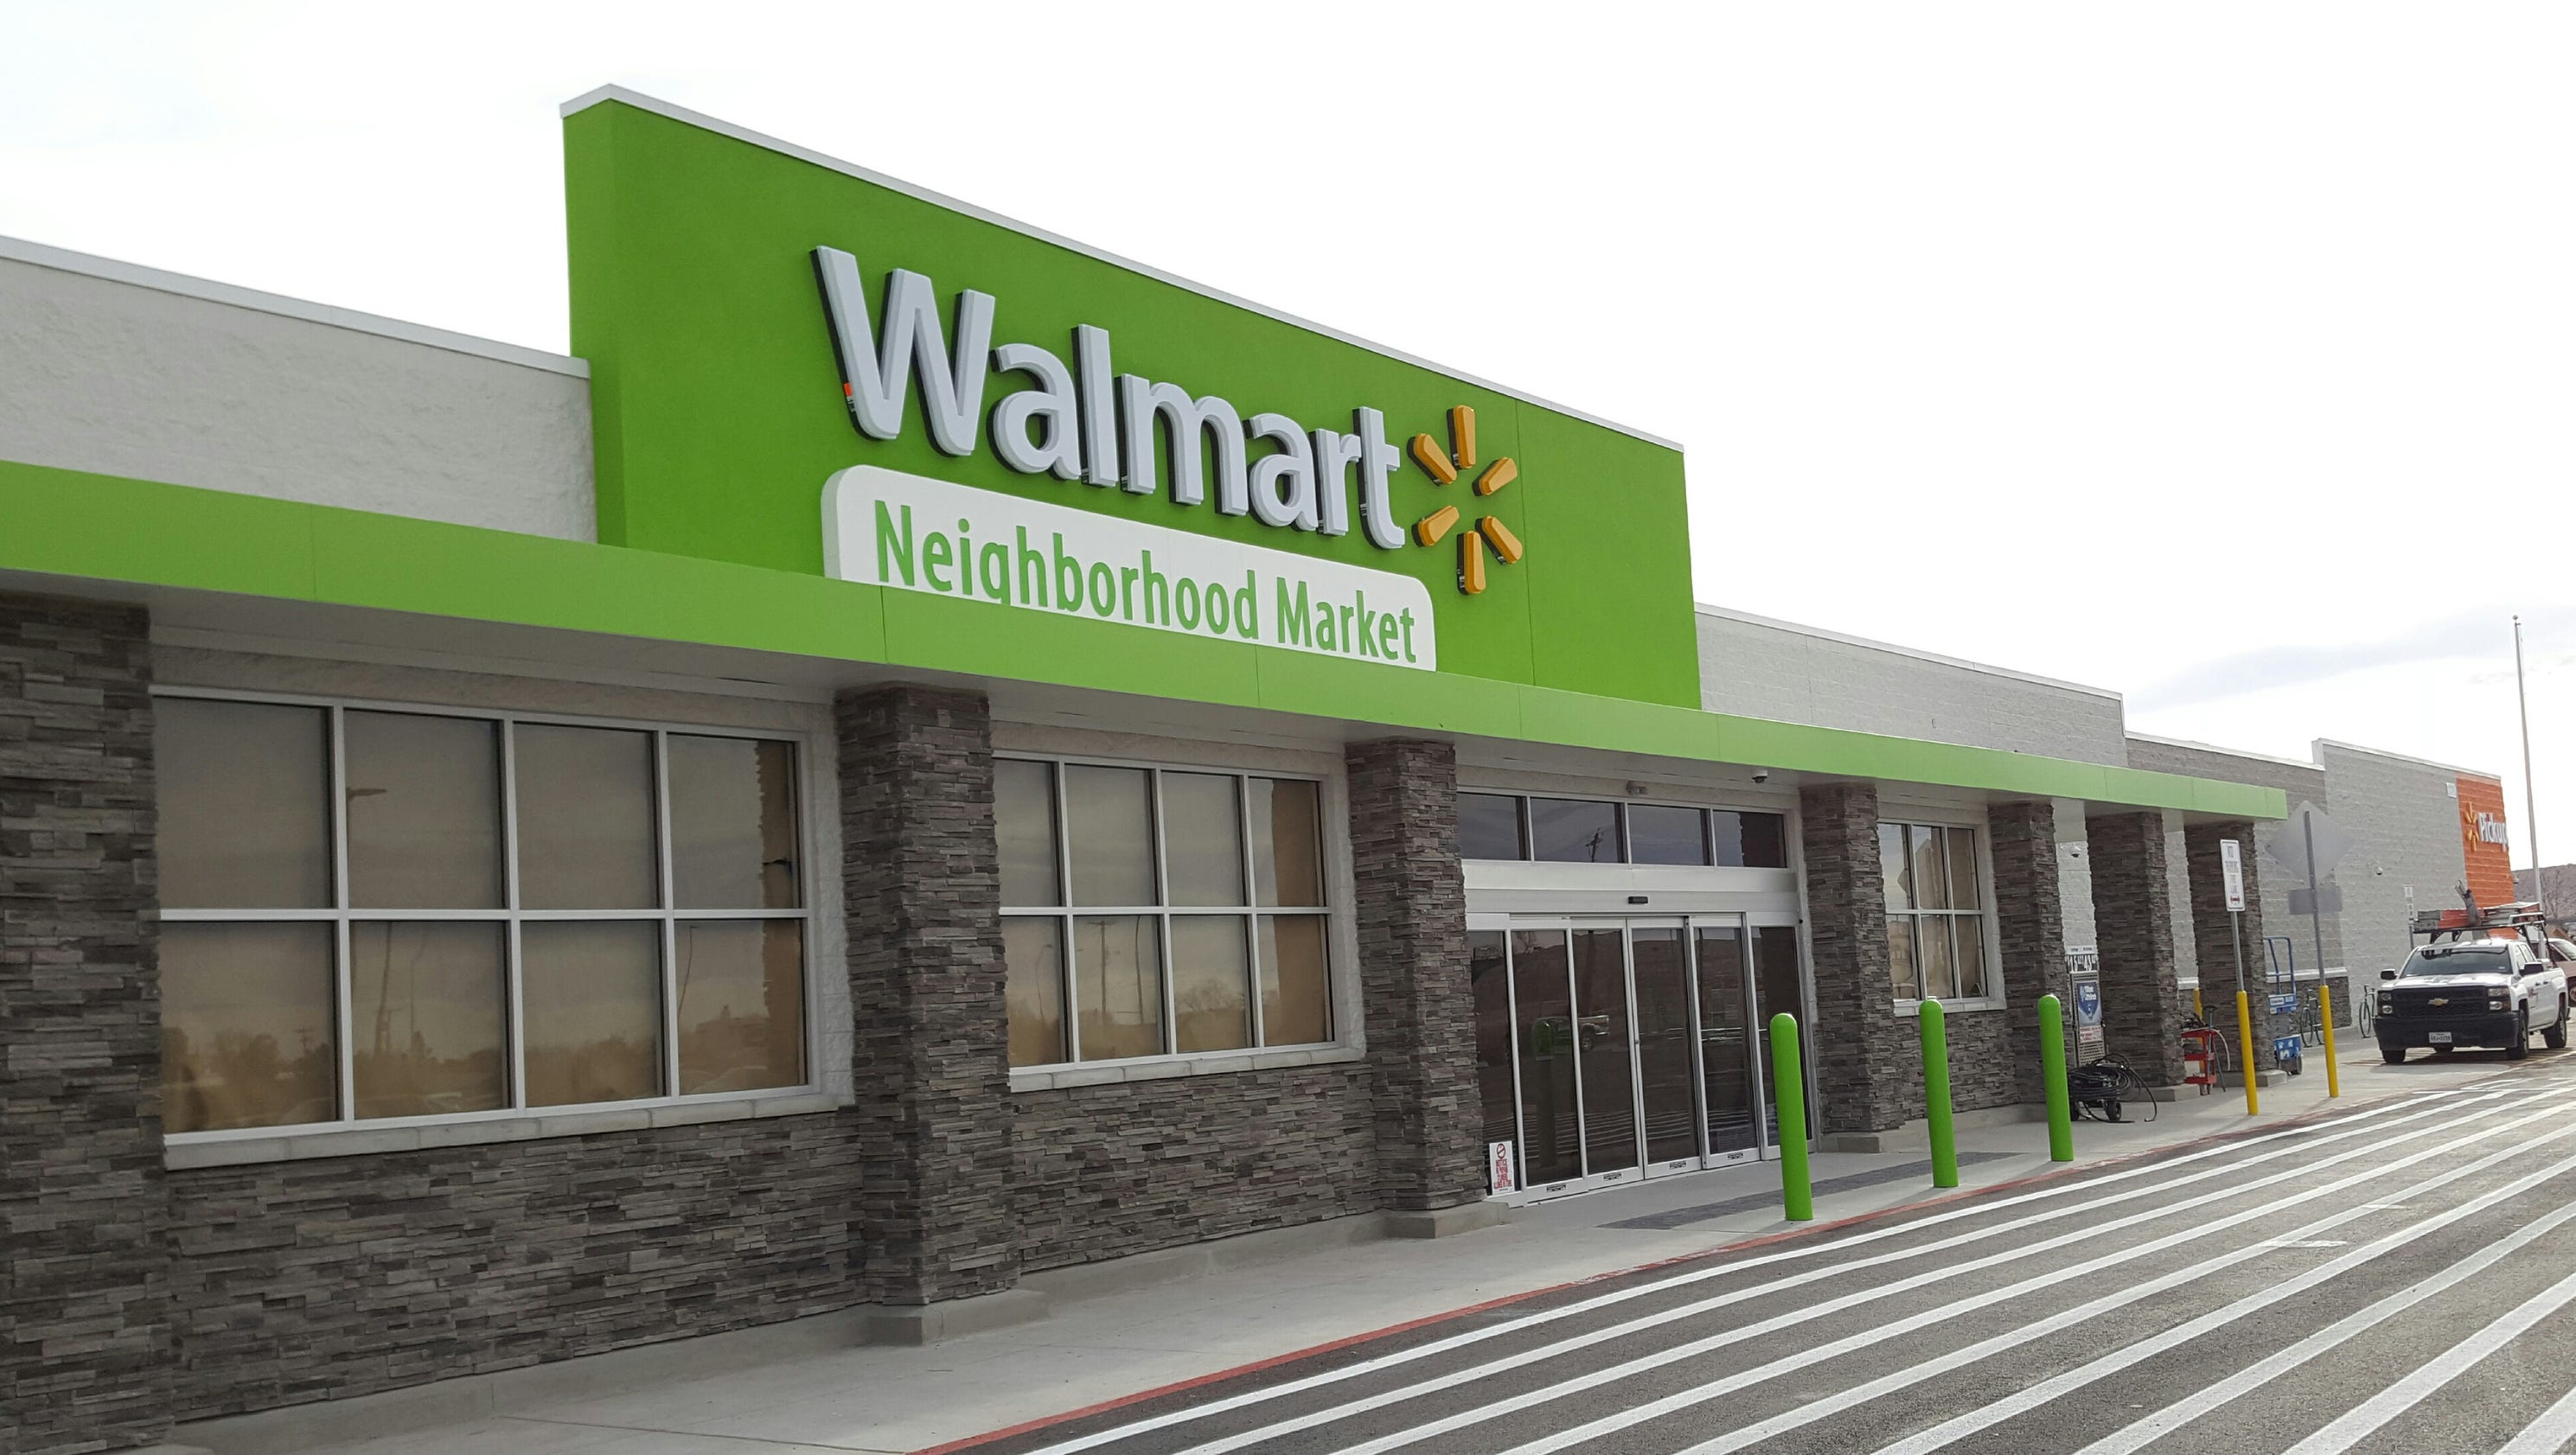 wal mart stores domination Say a walmart produces 100 jobs but kills off 120 mom and pop store jobs just made up numbers there for the sake of the logic a costco would create only 33 jobs for that same 120 jobs killed off.